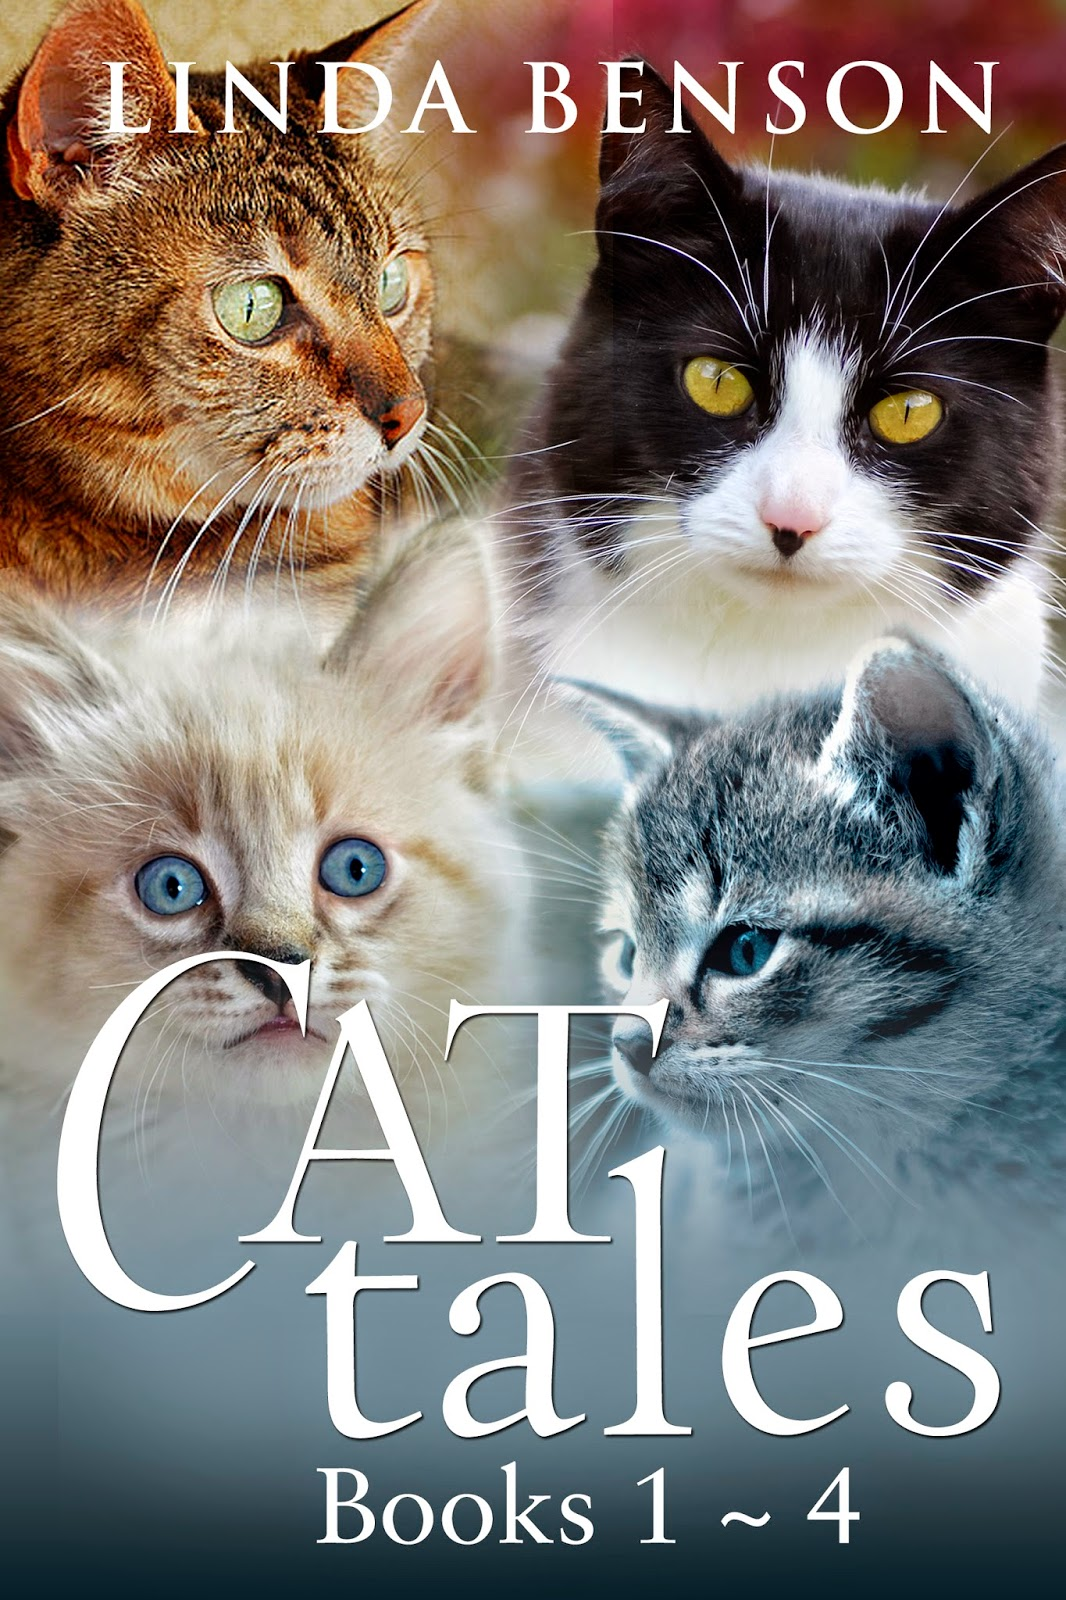 http://www.amazon.com/Cat-Tales-Books-Linda-Benson-ebook/dp/B00P5KMD28